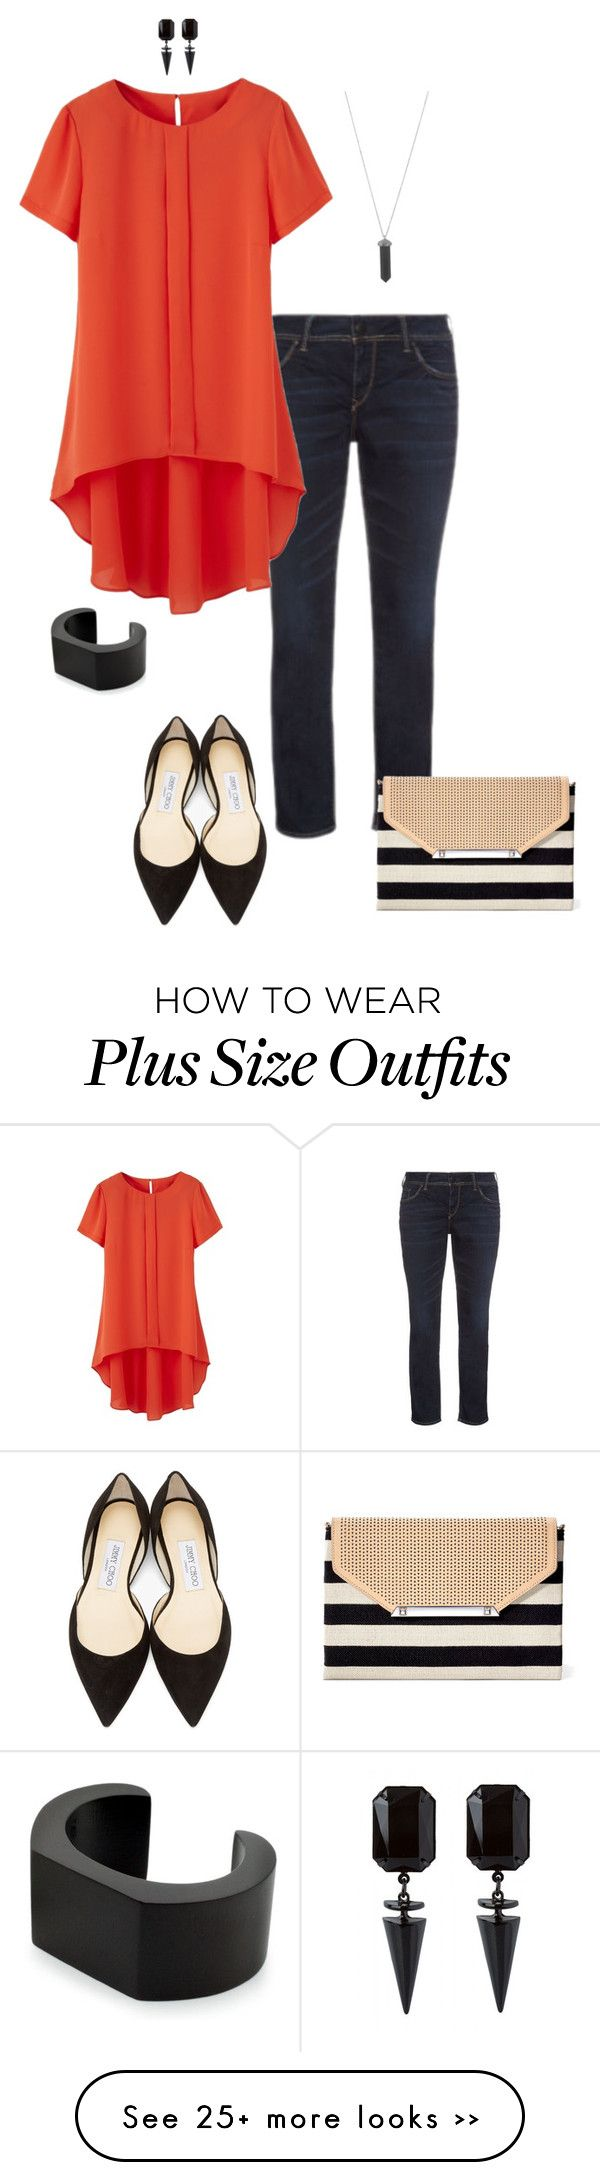 """Try something different- plus size"" by gchamama on Polyvore featuring Jimmy Choo, Stella & Dot, NOVICA and Karen Kane"